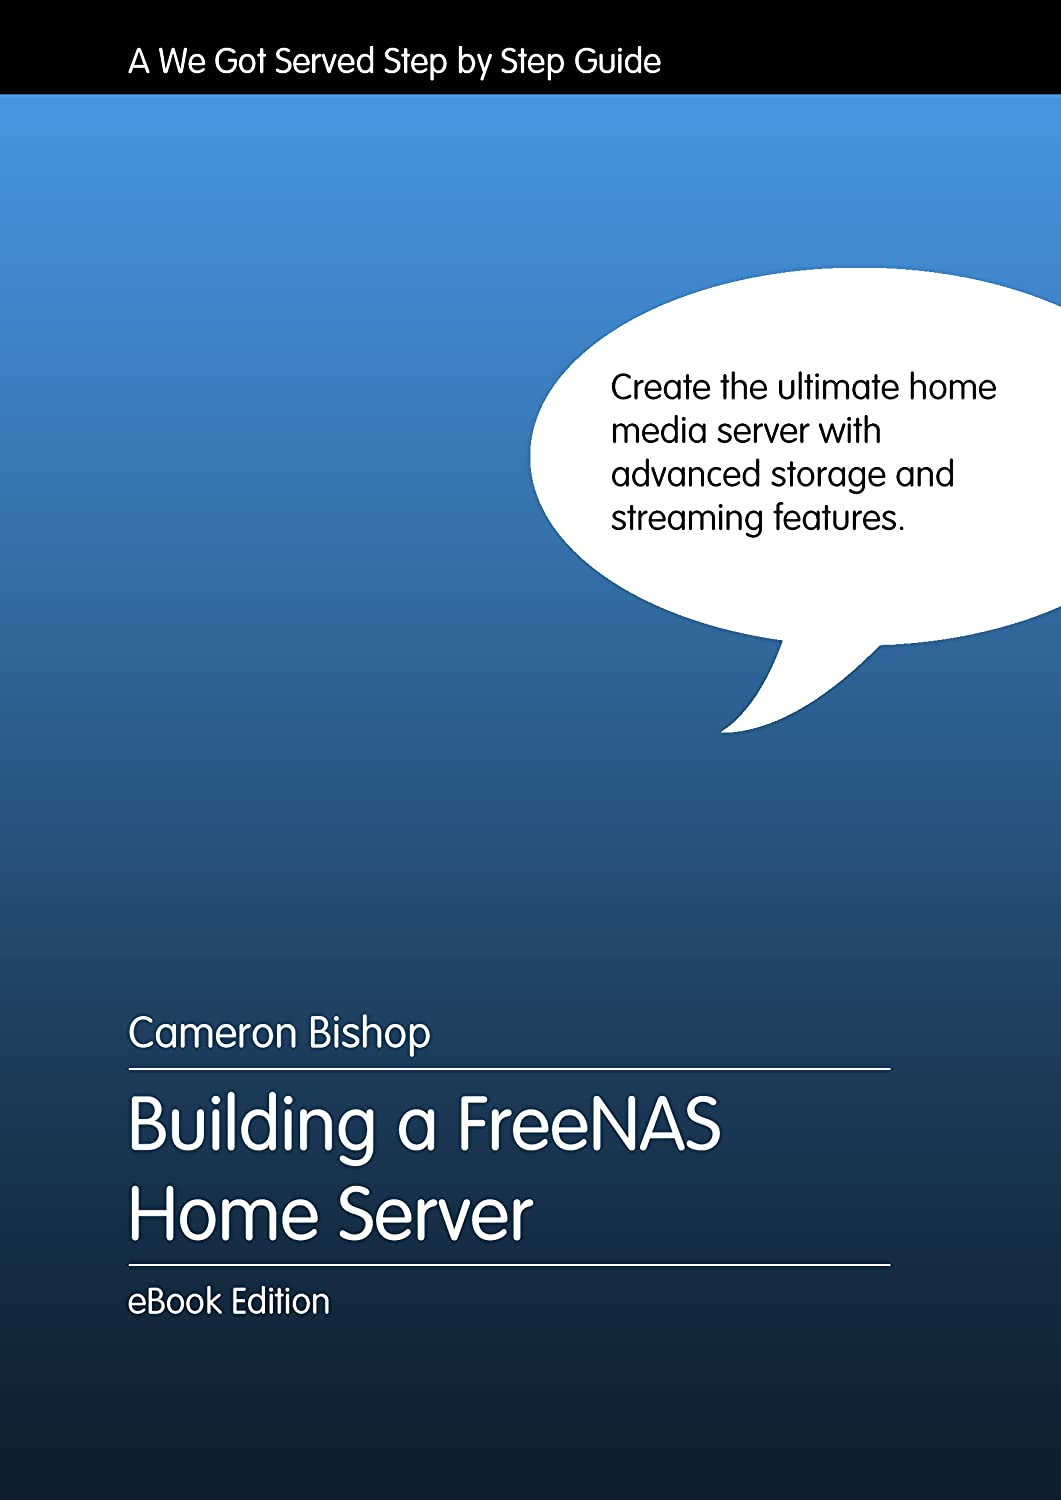 Building a FreeNAS Home Server See more